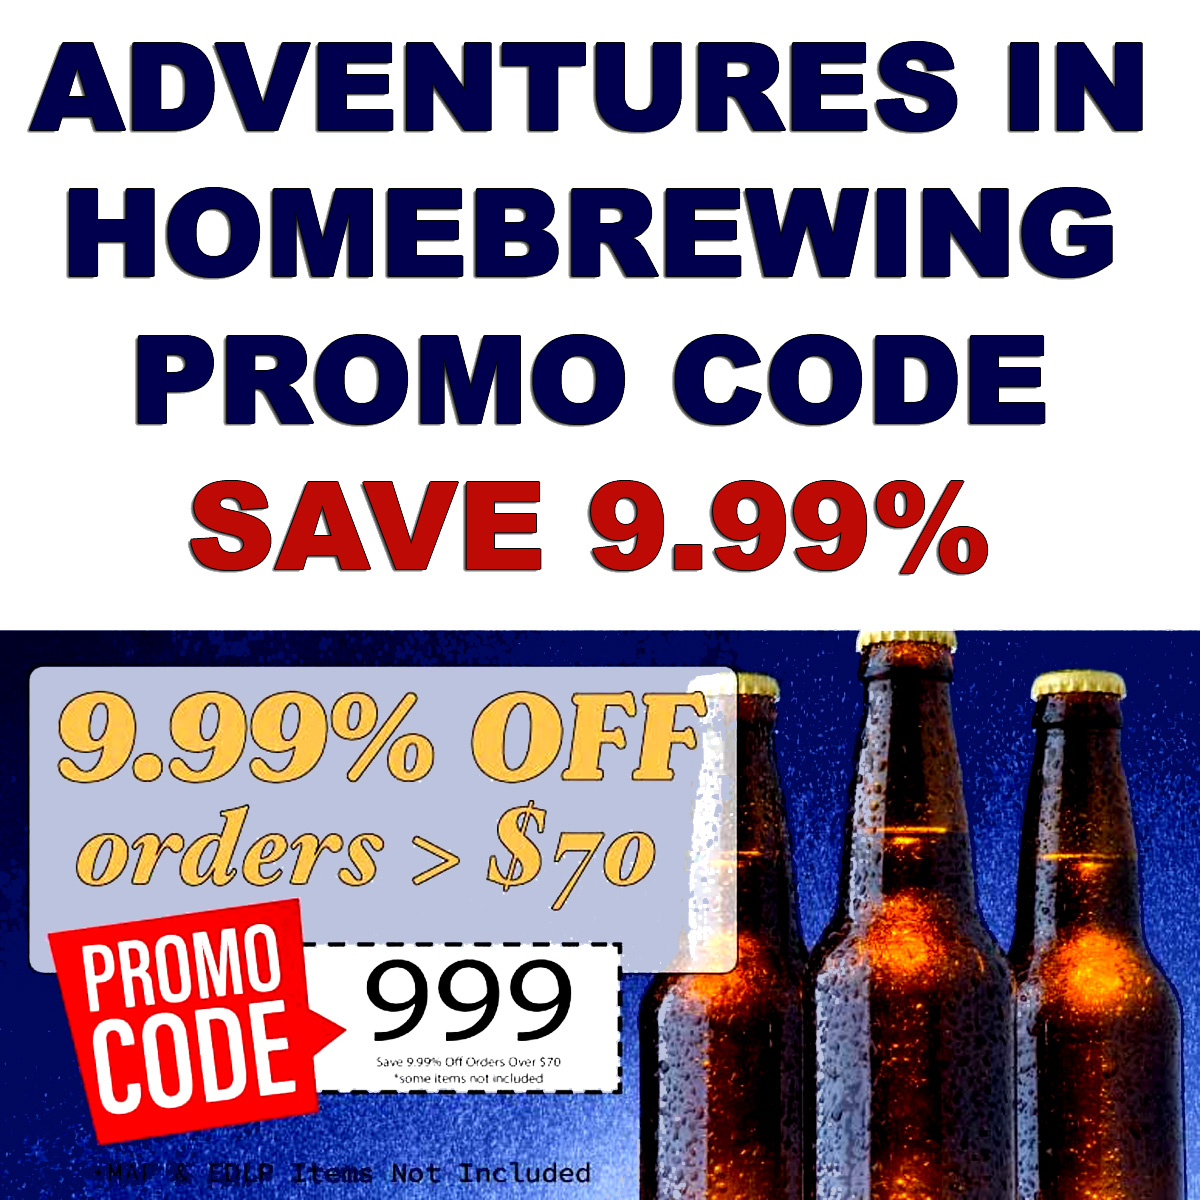 Home Wine Making Coupon Codes for Save 9.99% On Orders Over $70 at Adventures in Homebrewing With This Homebrewing.org Deal! Coupon Code